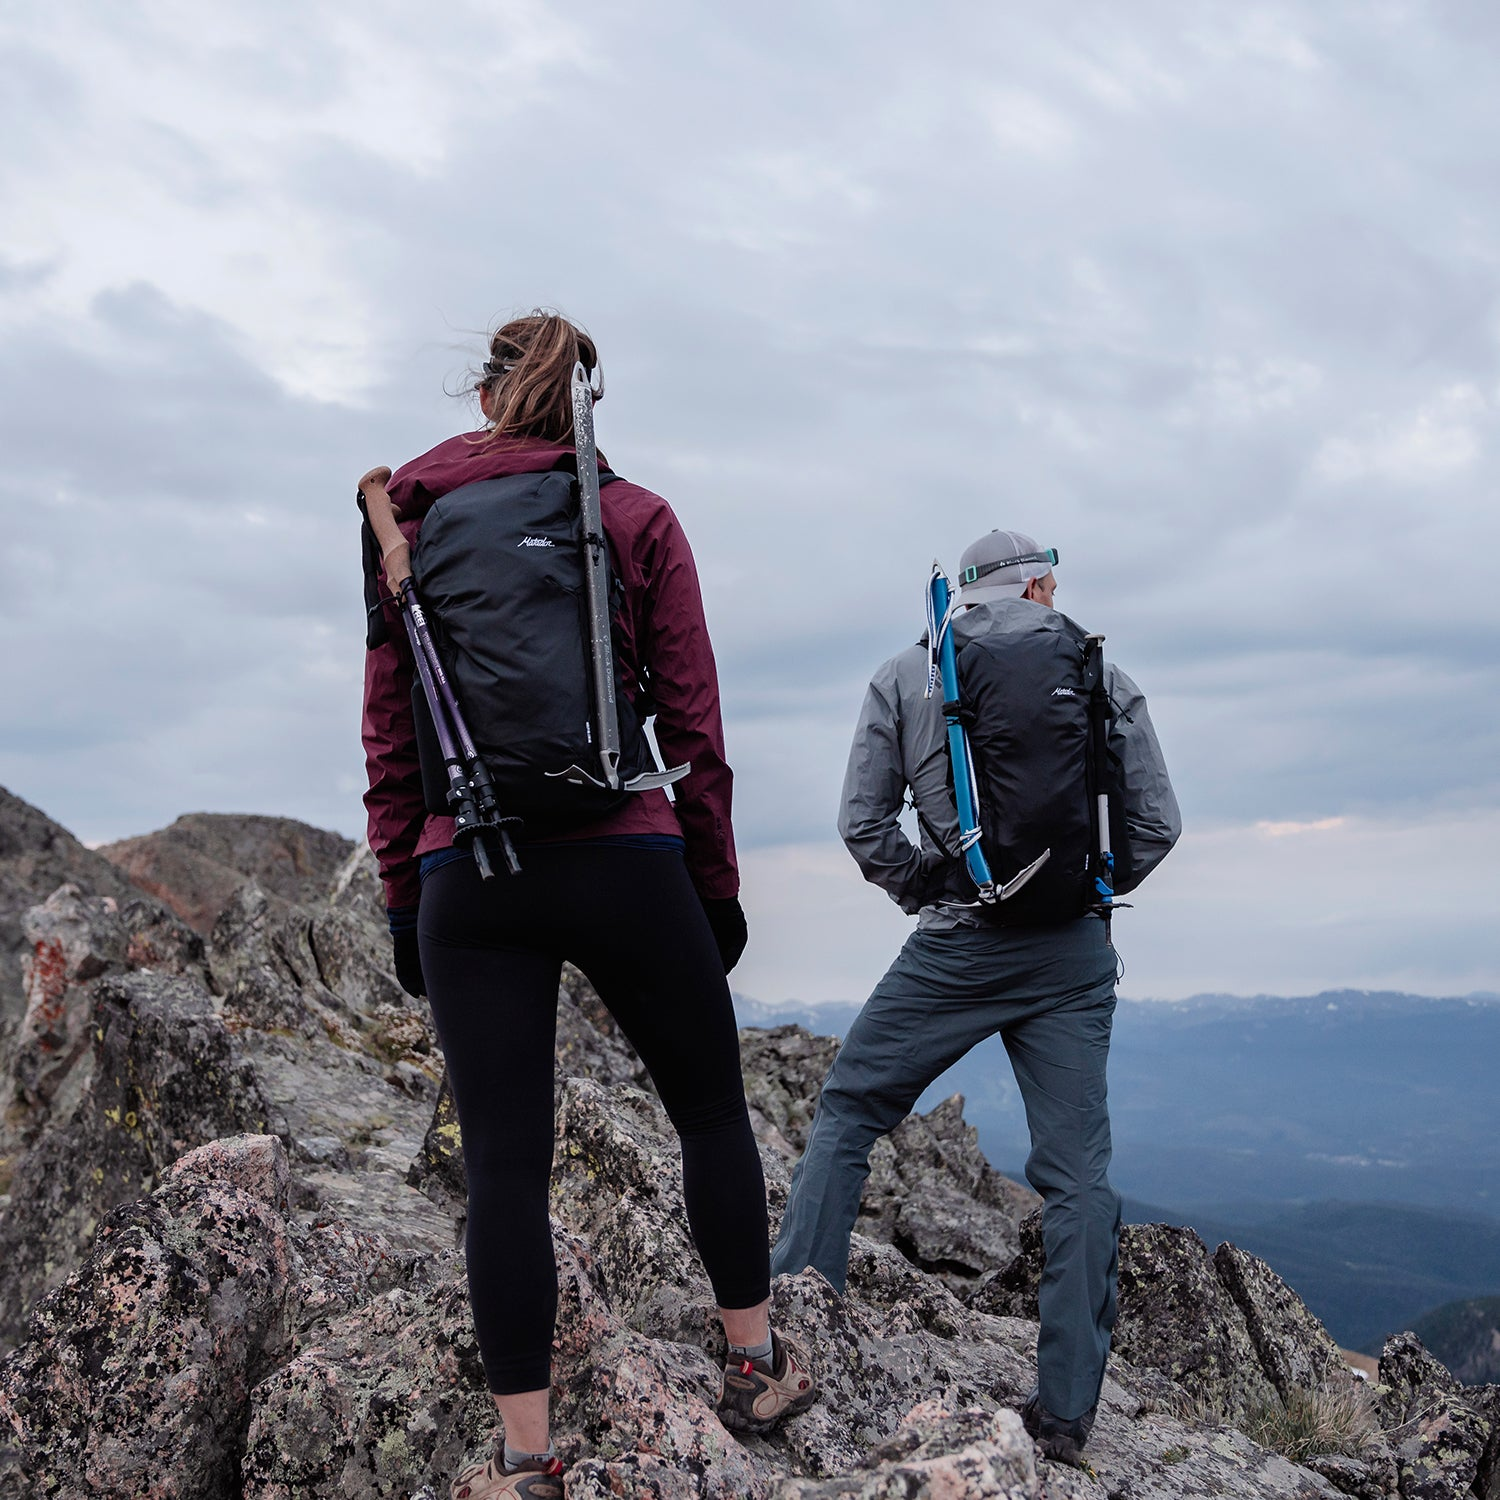 Man and woman standing on top of rocky peak